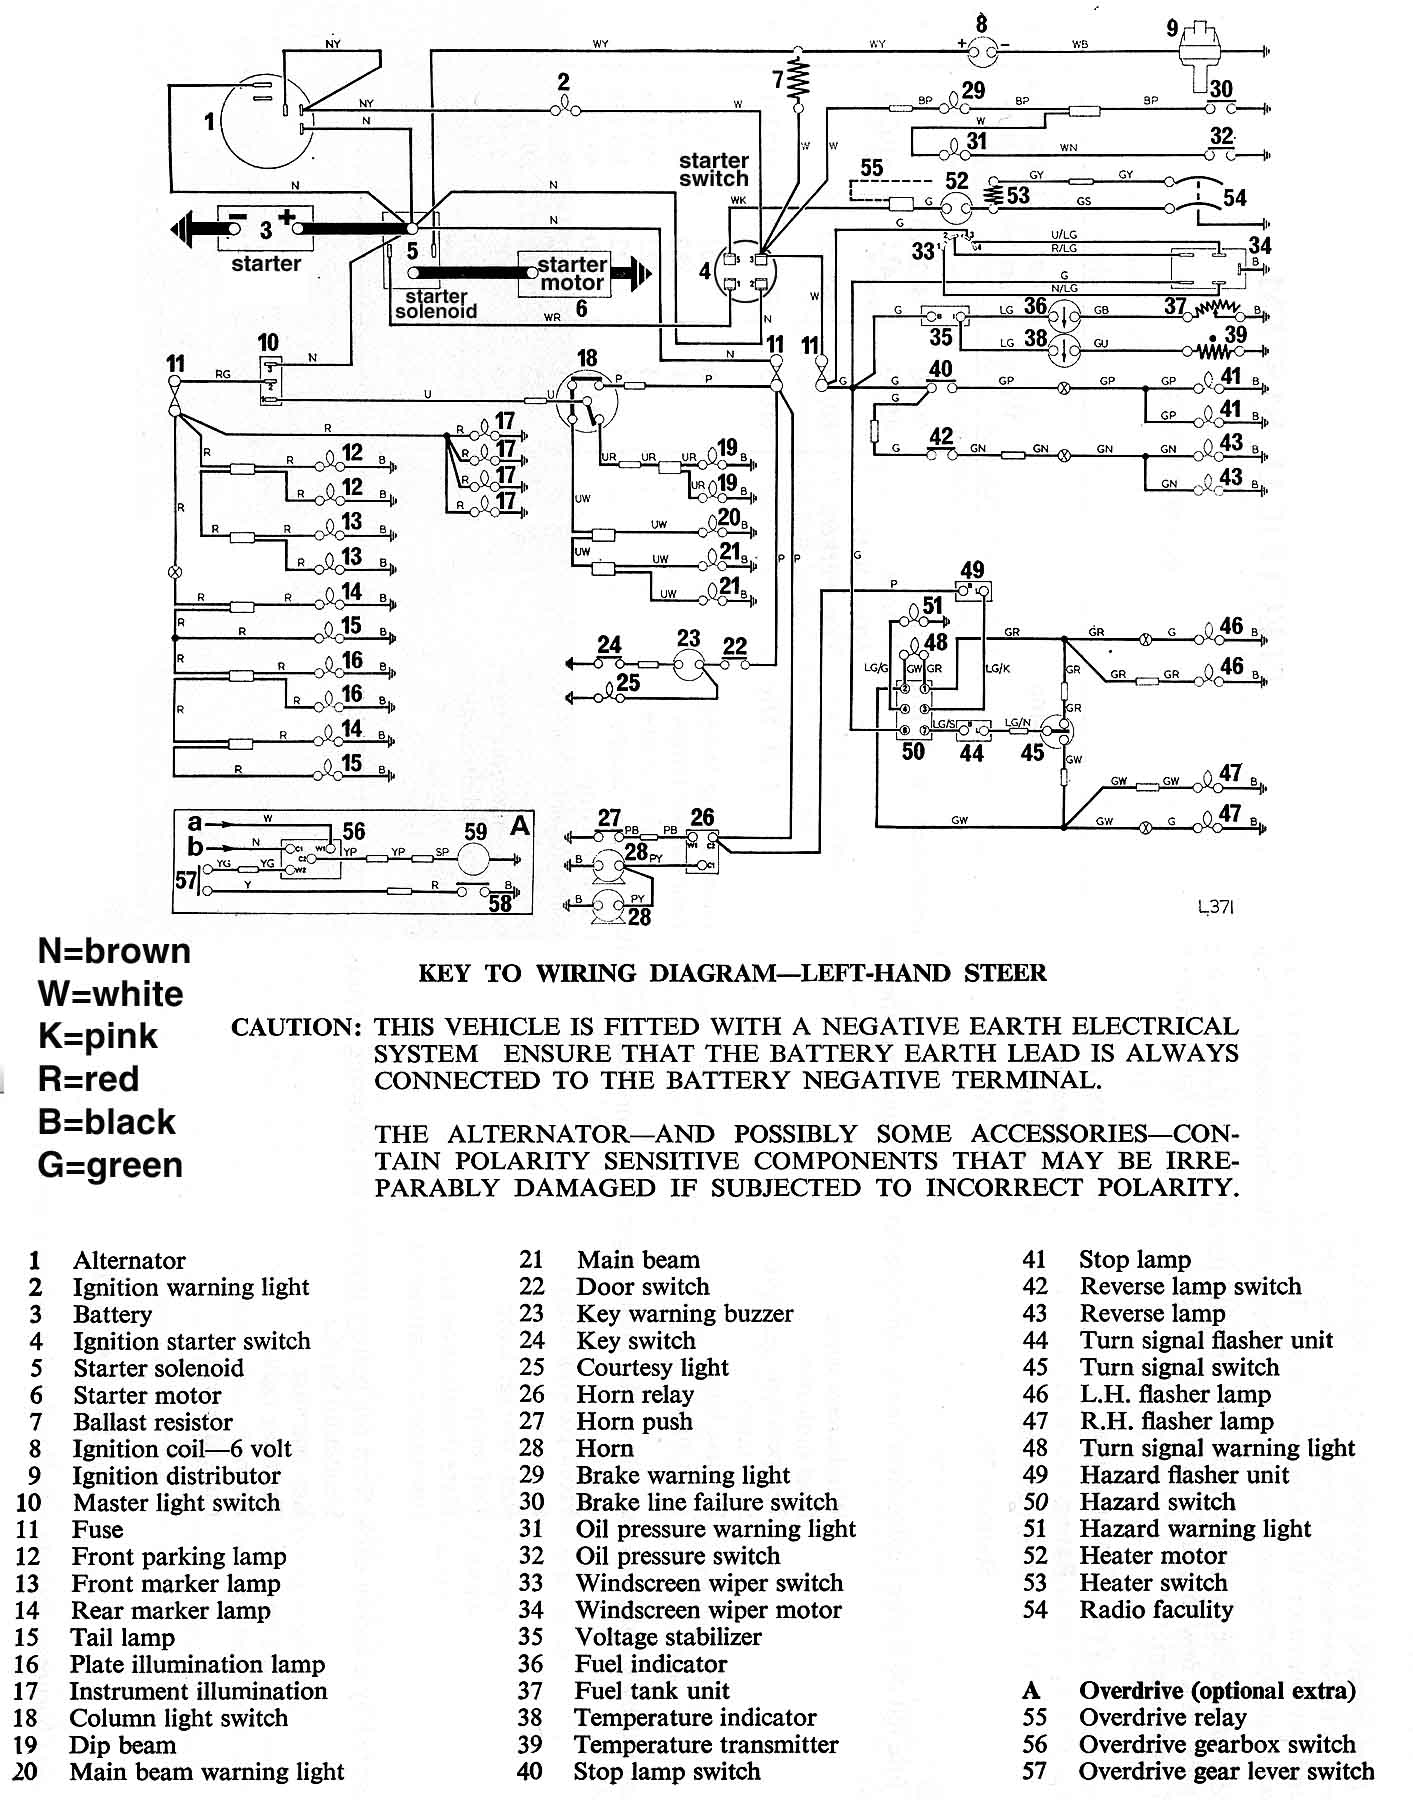 MKIVwire wiring schematics and diagrams triumph spitfire, gt6, herald 1979 triumph spitfire wiring diagram at fashall.co